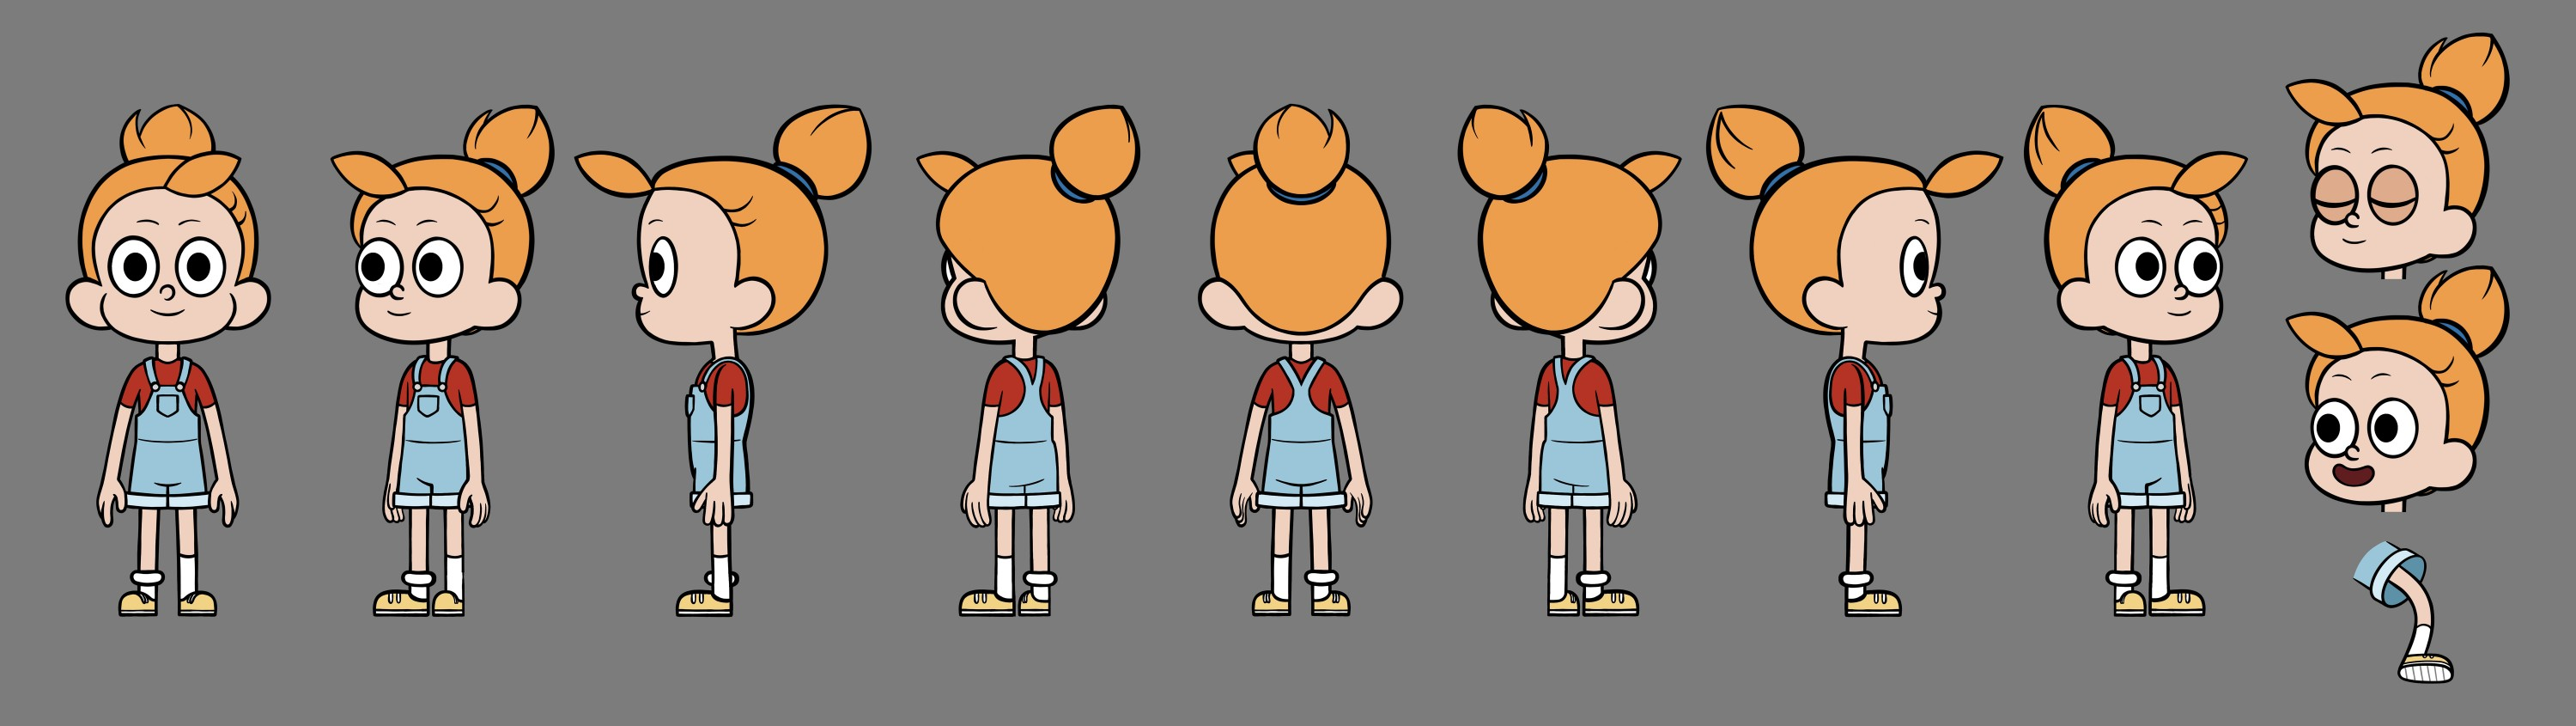 Character design turnaround, facial expression exploration sheet, and hand pose exploration sheet. All depict a redheaded child wearing overalls.